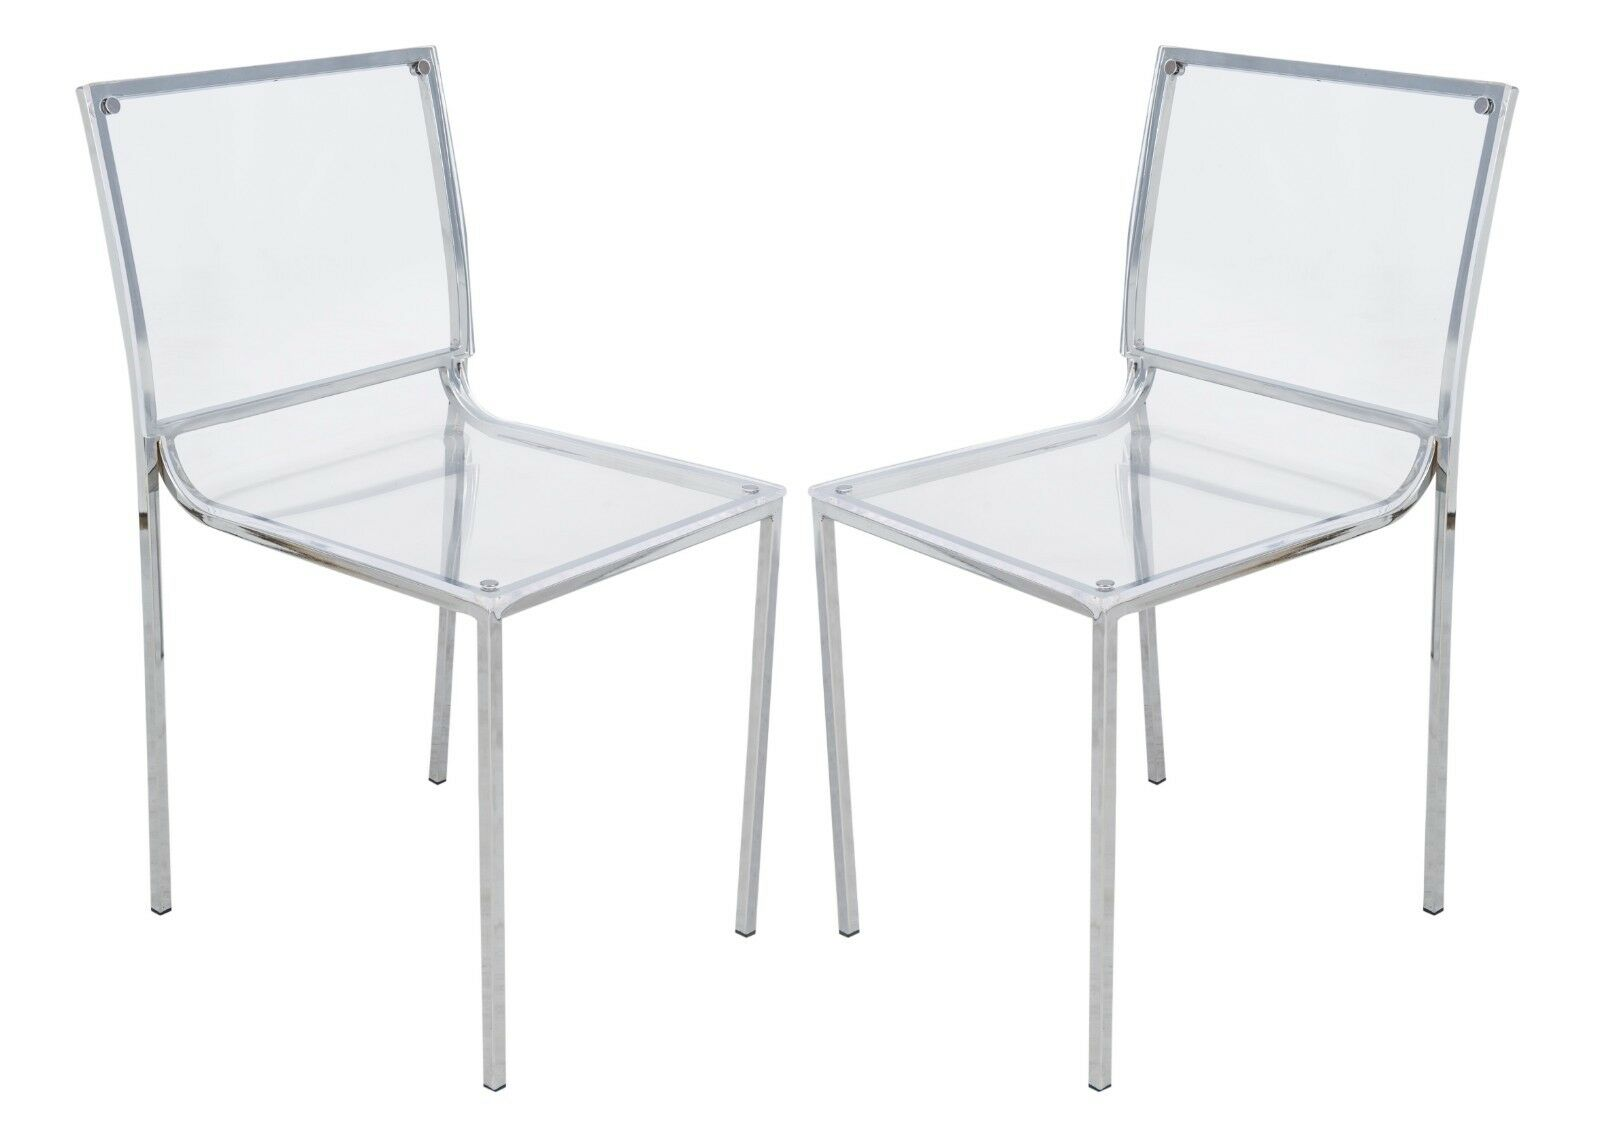 Lucite Chair Leisuremod Almeda Lucite Acrylic Clear Dining Side Chair W Chrome Legs Set Of 2